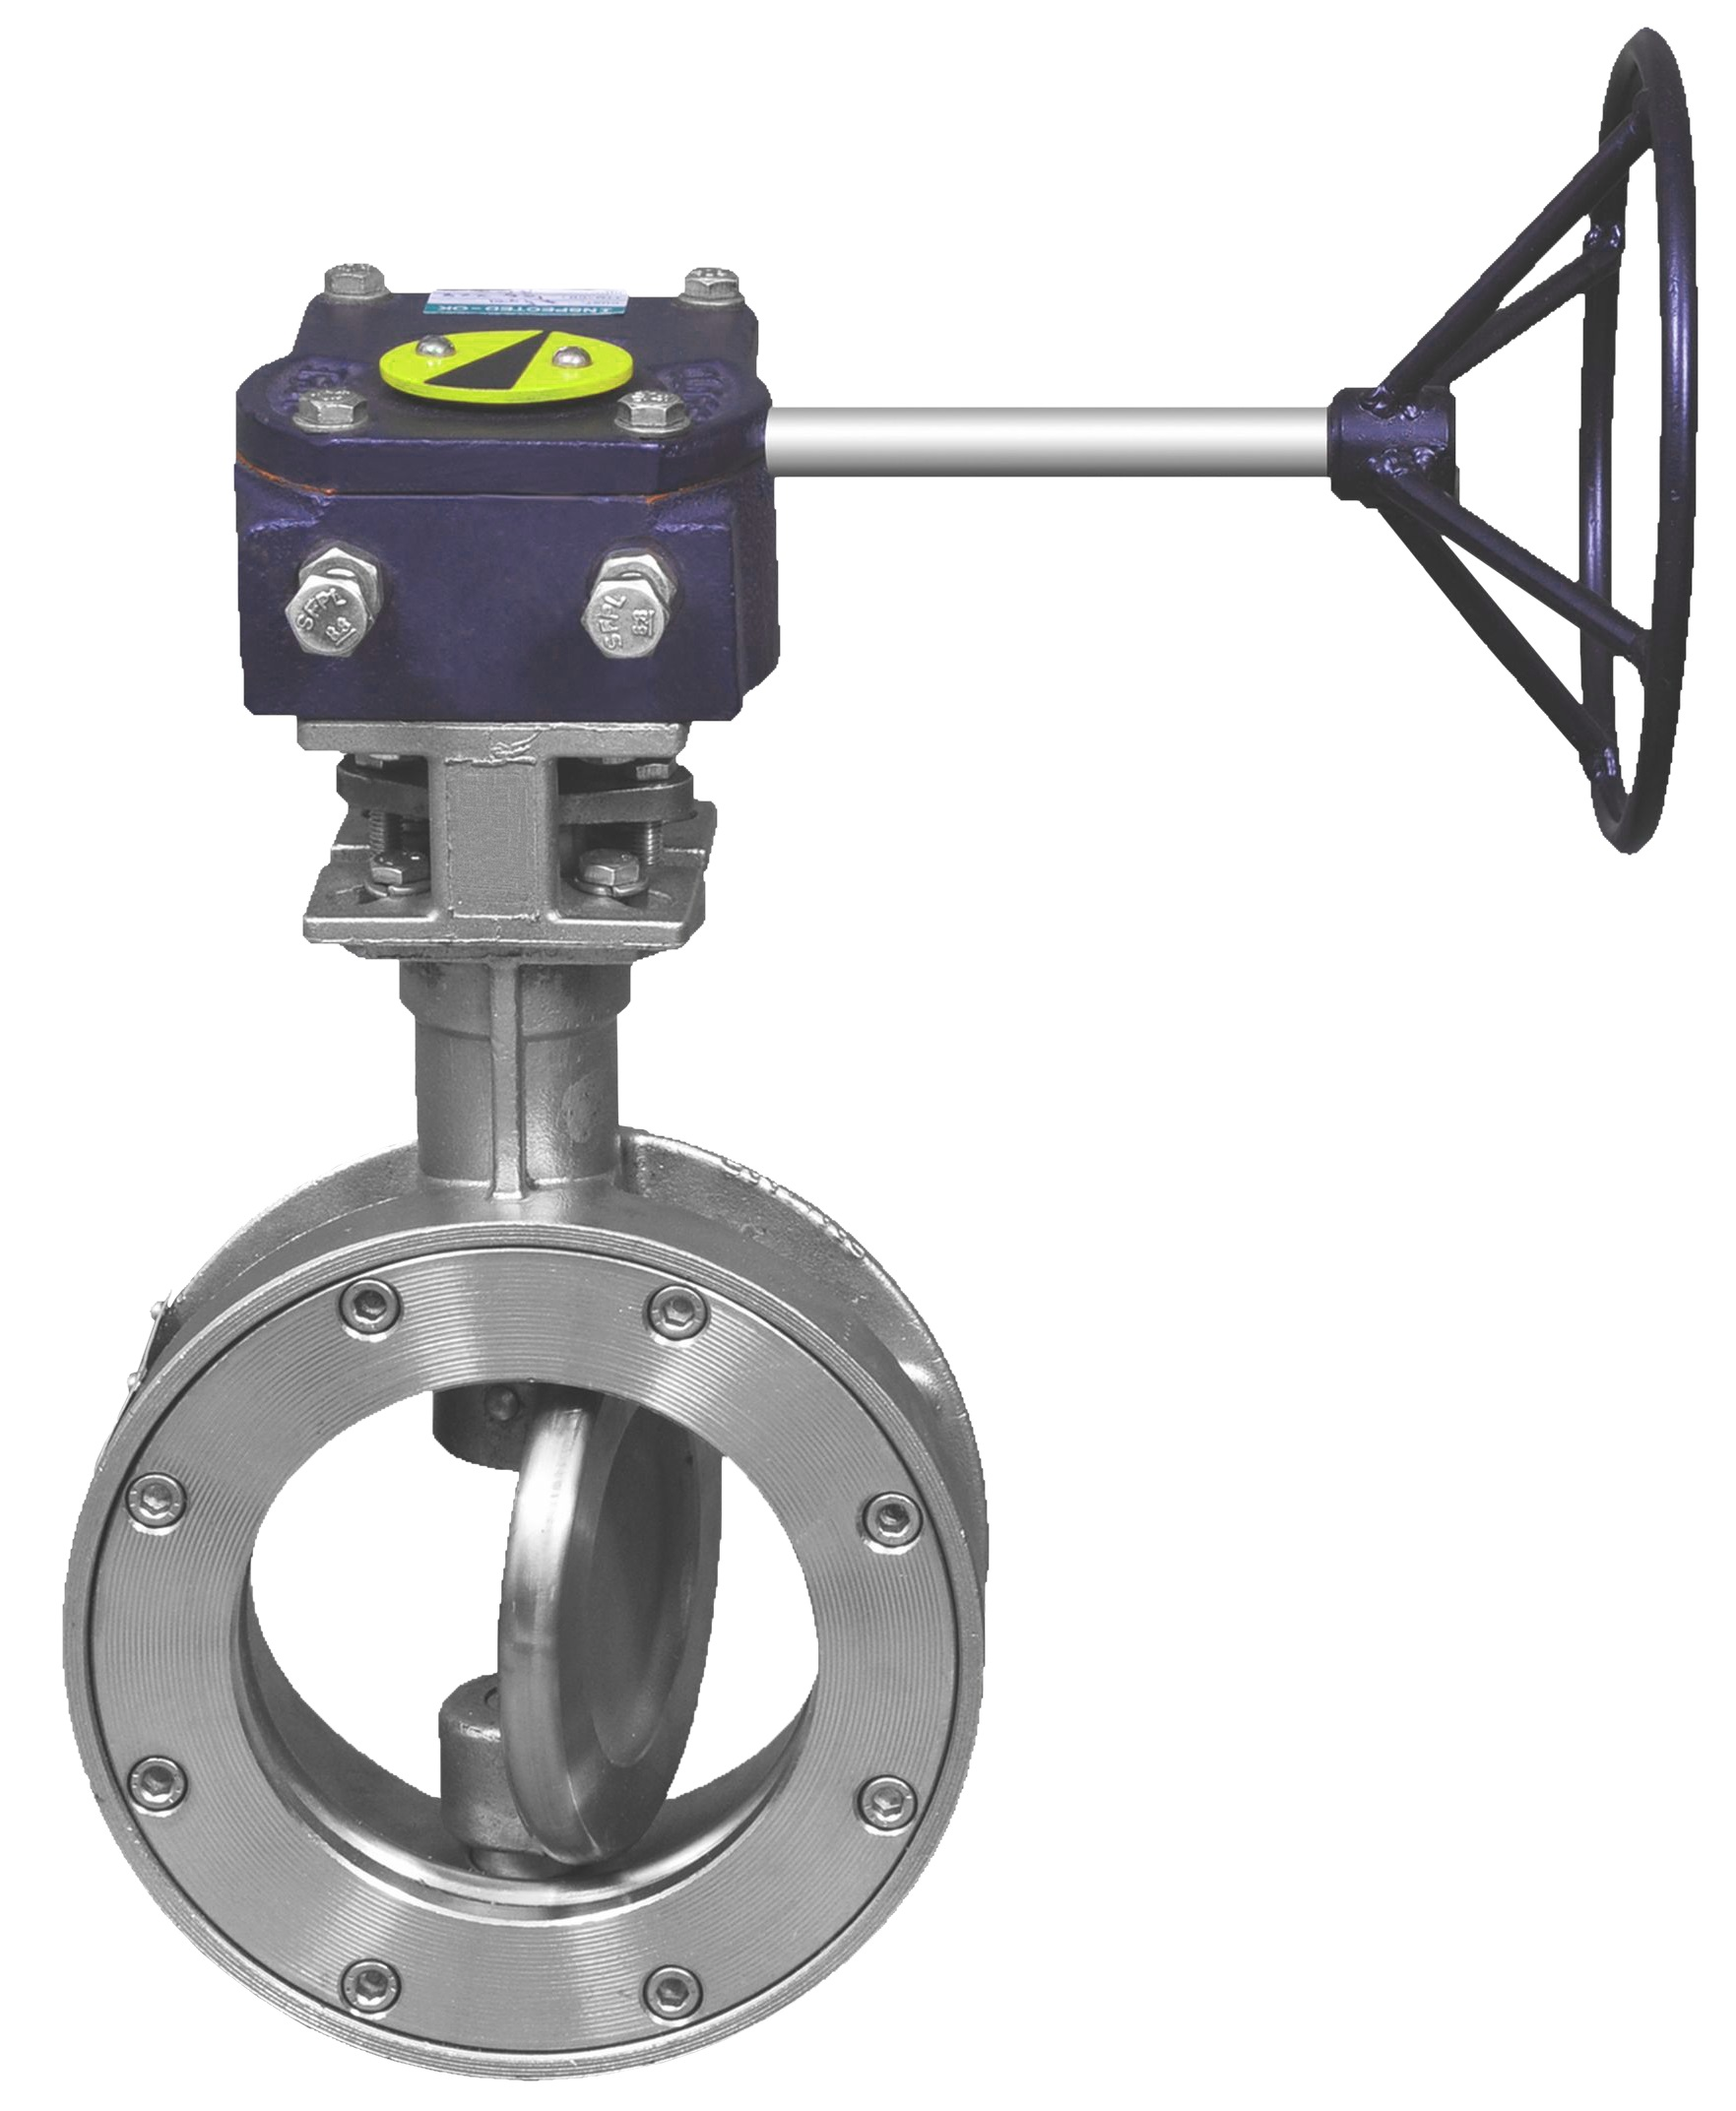 SPHERICAL DISC VALVE HIGH PERFORMANCE BUTTERFLY VALVE